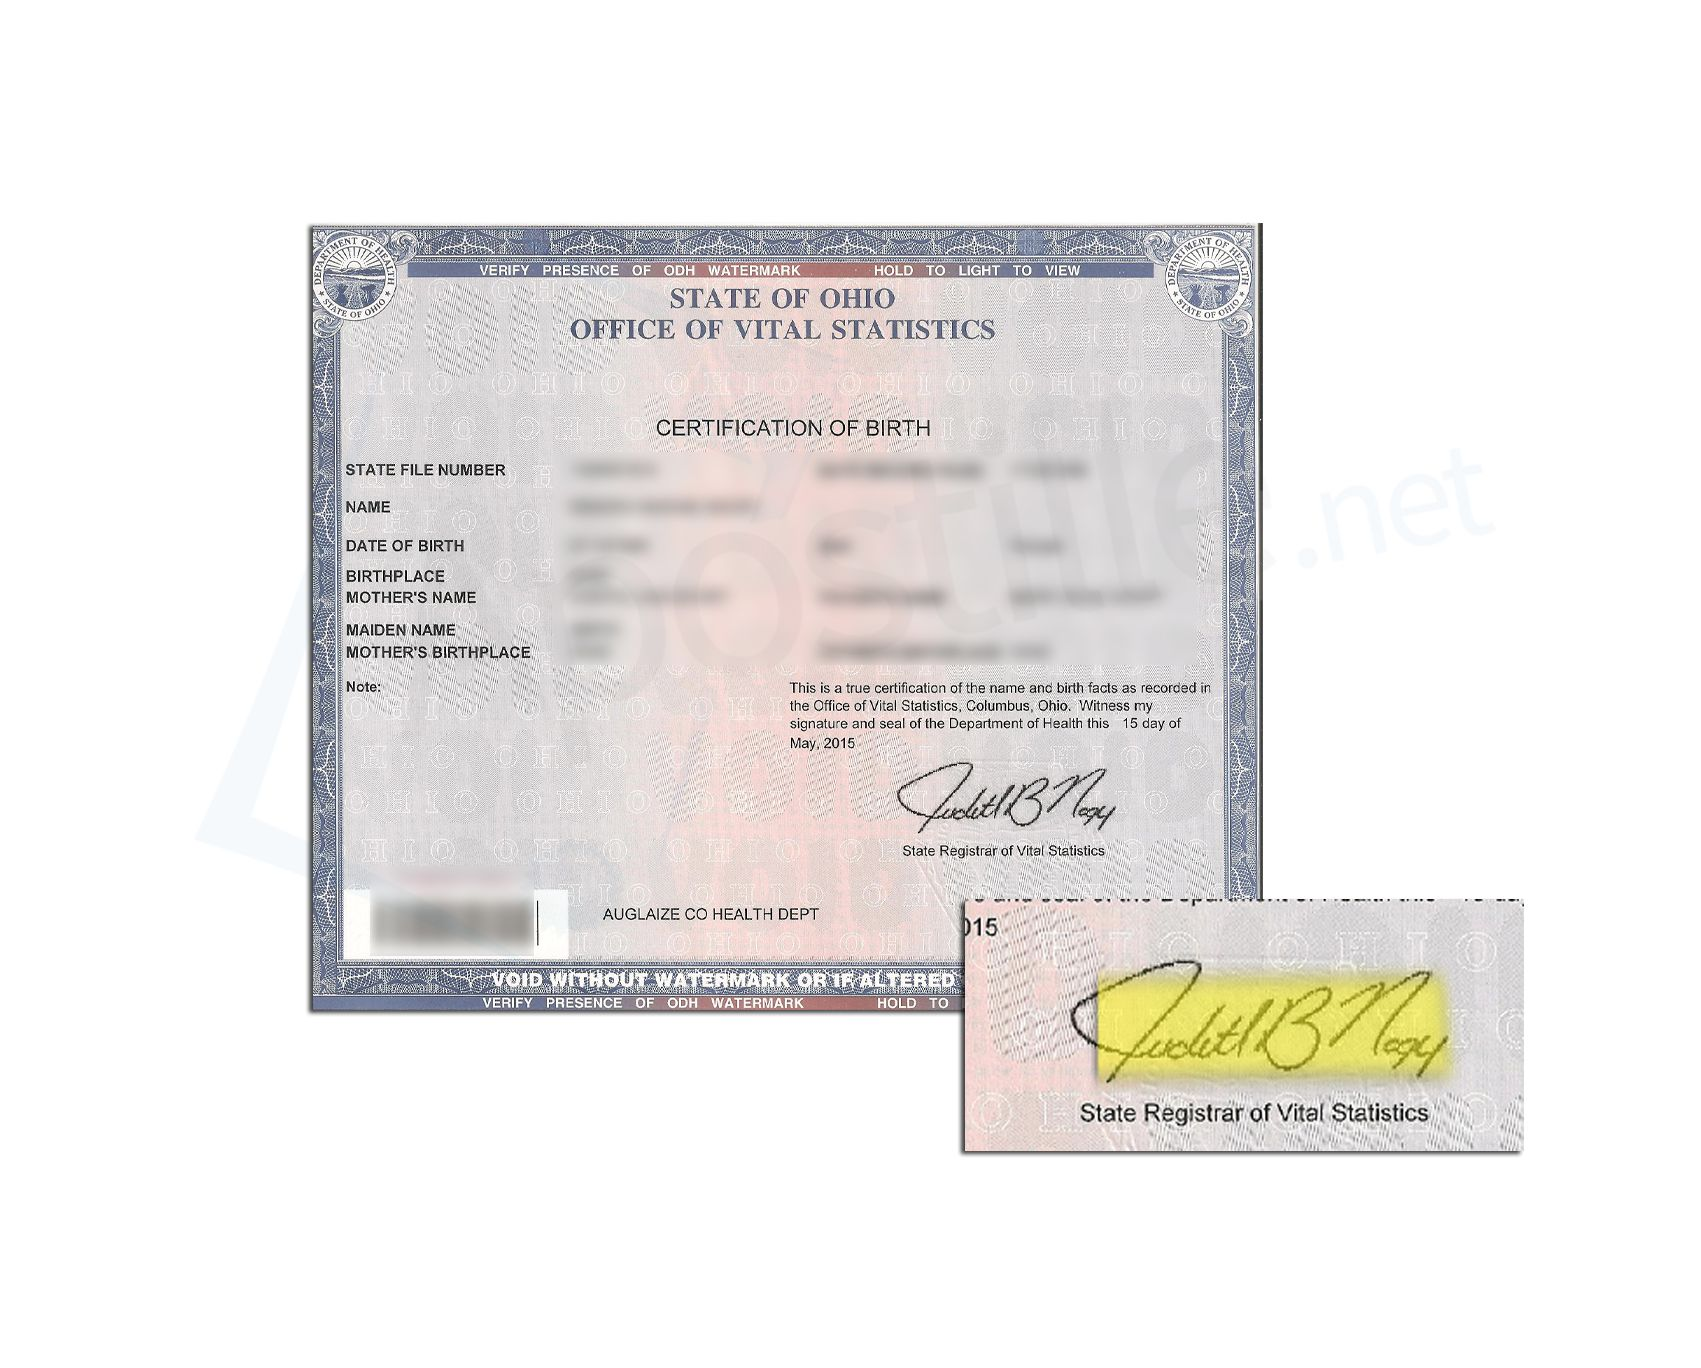 State Of Ohio Birth Certificate Issued By Judith B Nagy State Of Ohio Sample Apostille Ohio